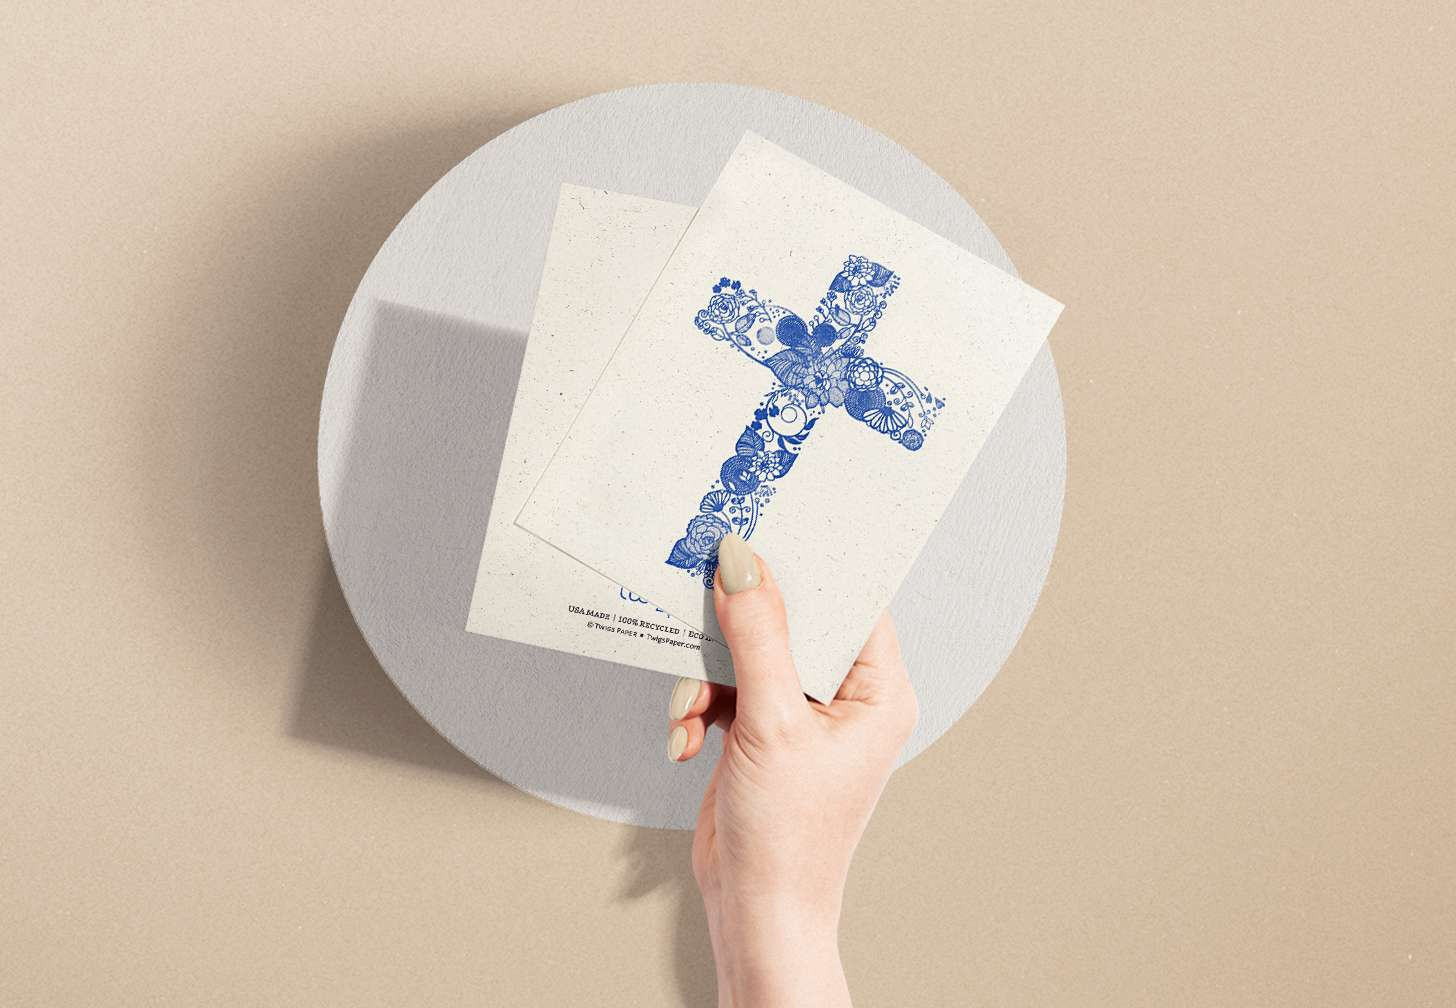 Woman's hand holding card with blue floral cross design